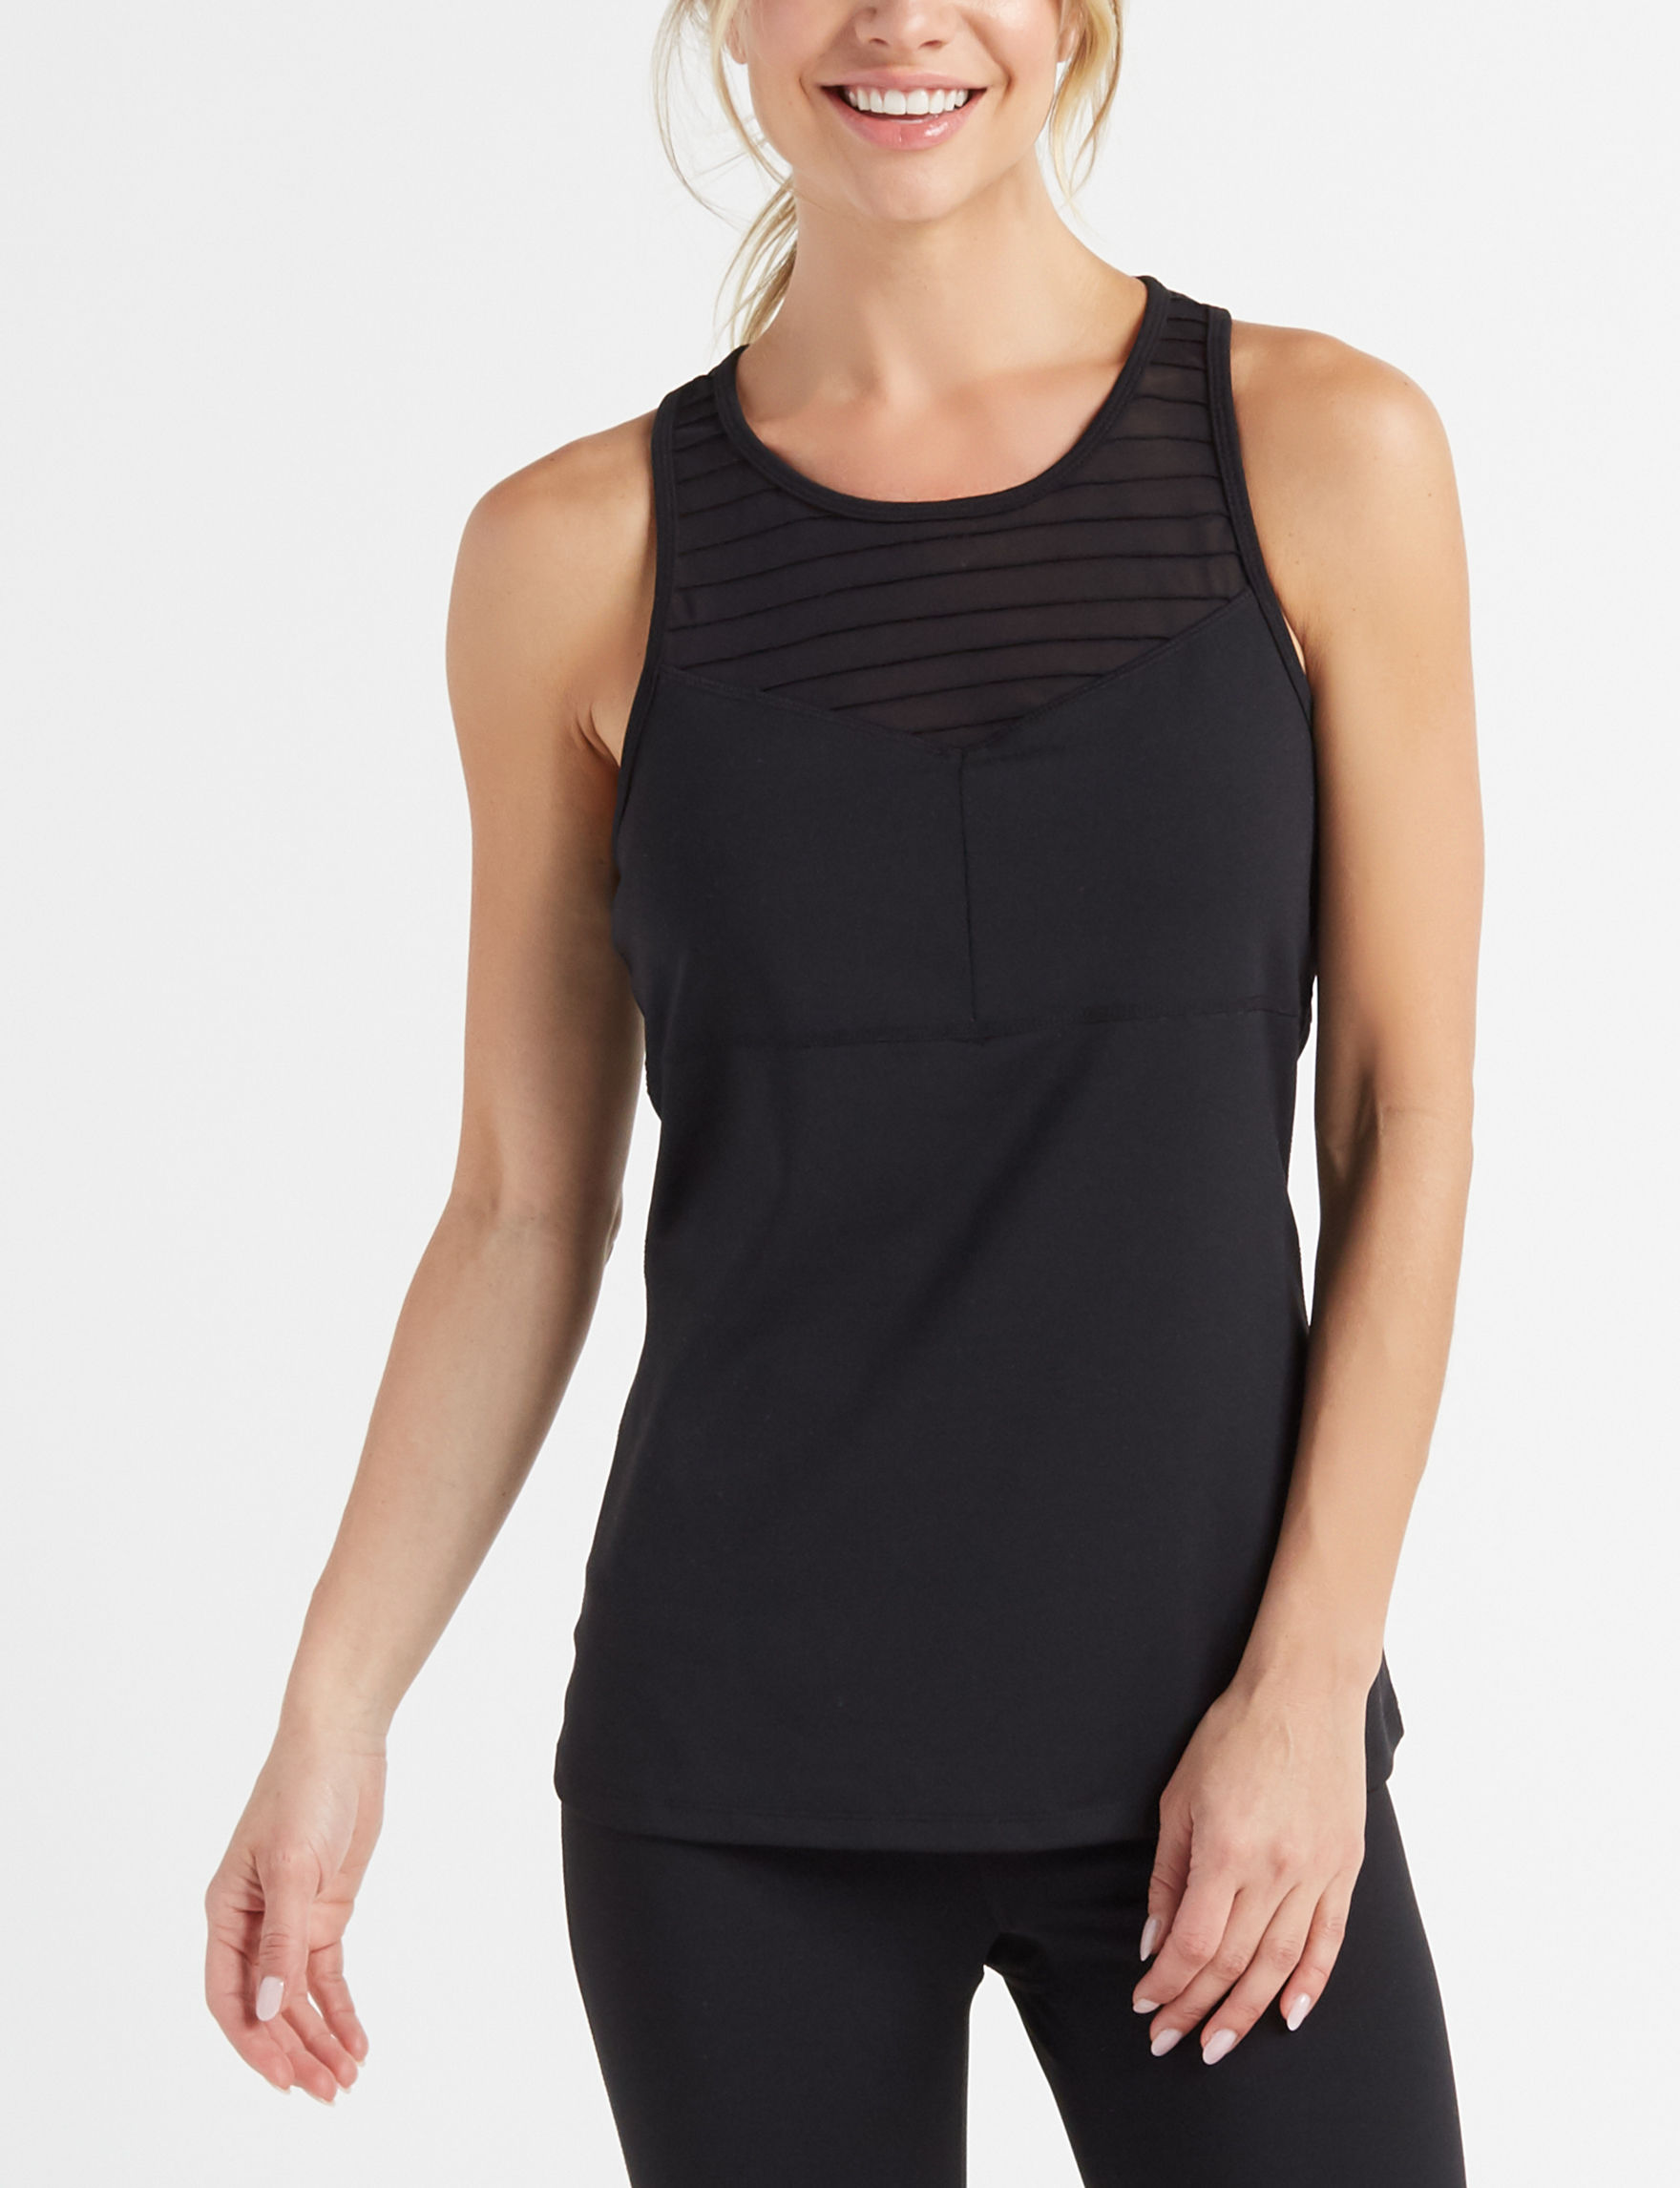 Gaiam Black Tees & Tanks